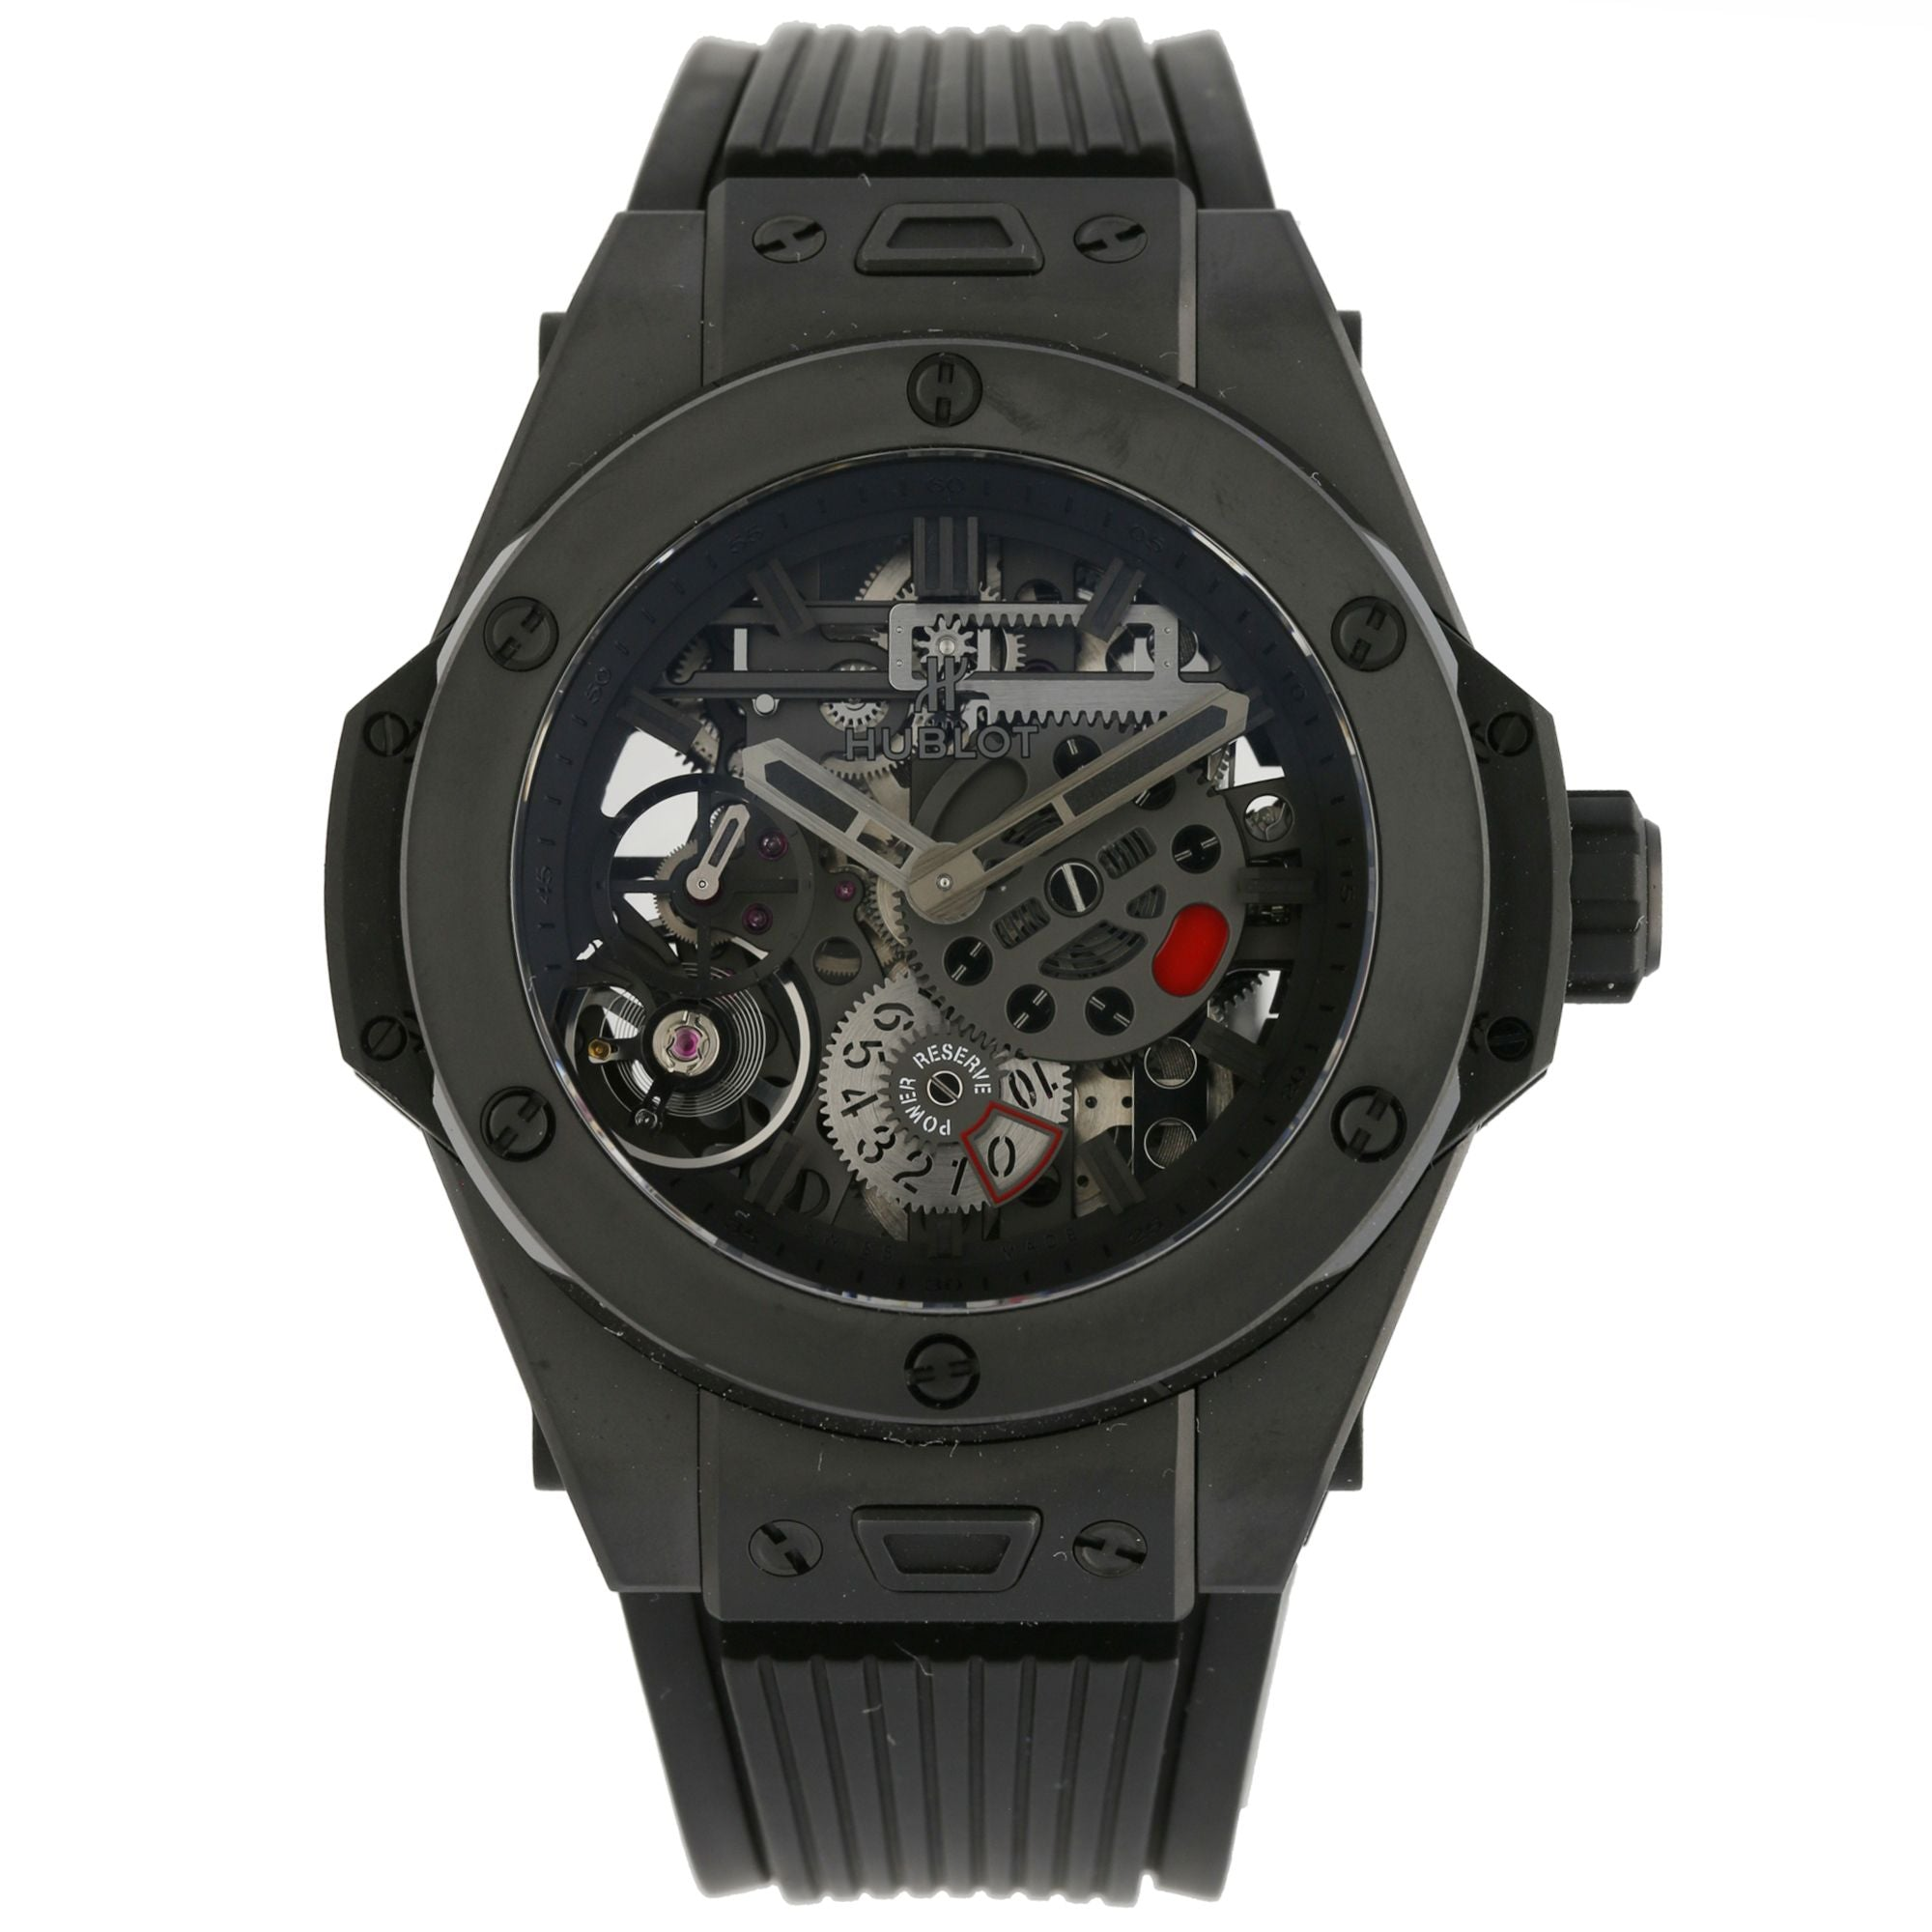 Hublot Big Bang 414.C1.1110.RX Ceramic & Skeleton 45mm Mens Watch